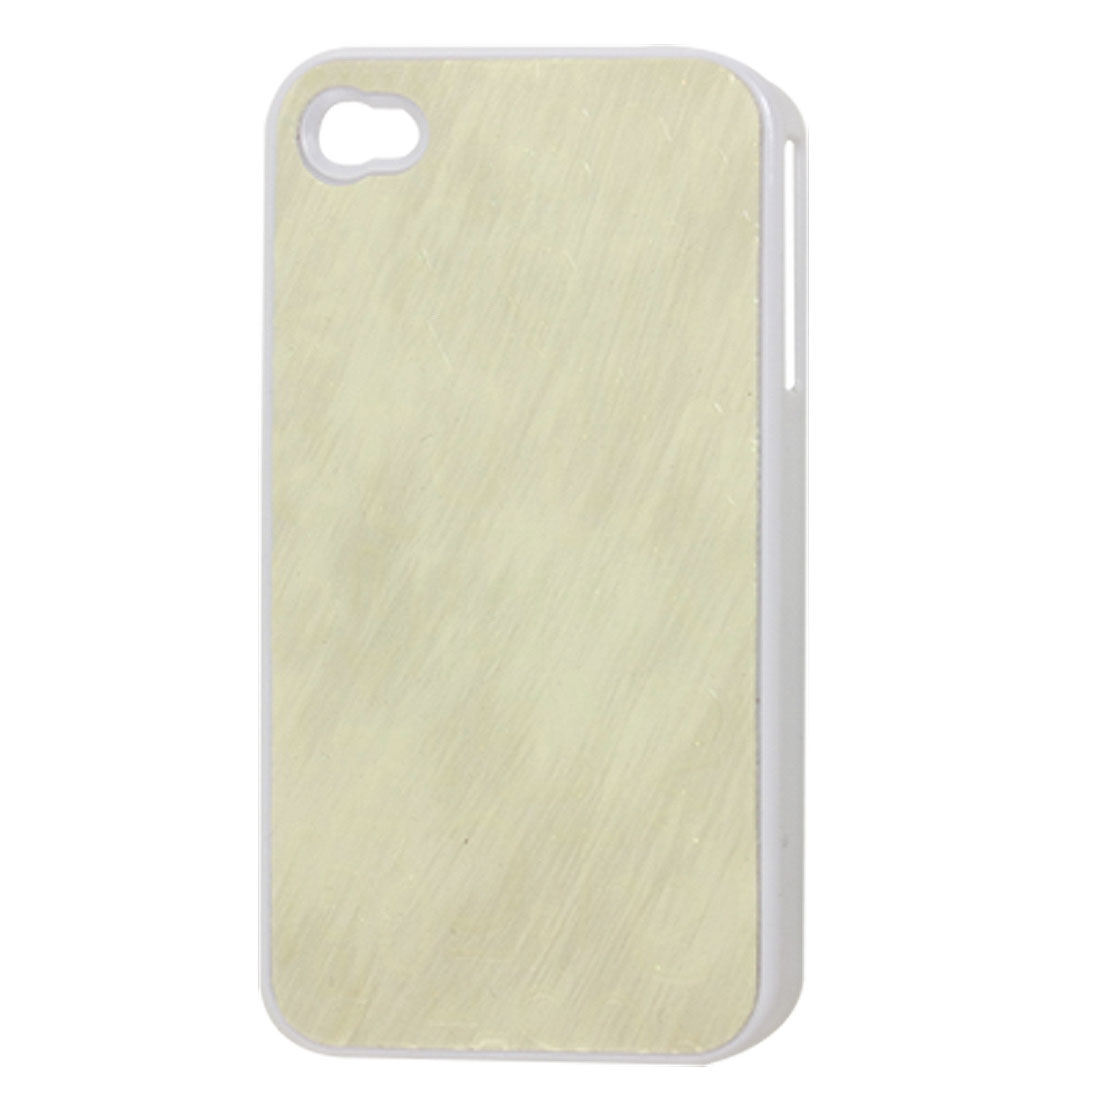 Ivory Faux Leather Coated Plastic Back Cover Case for iPhone 4 4G 4S